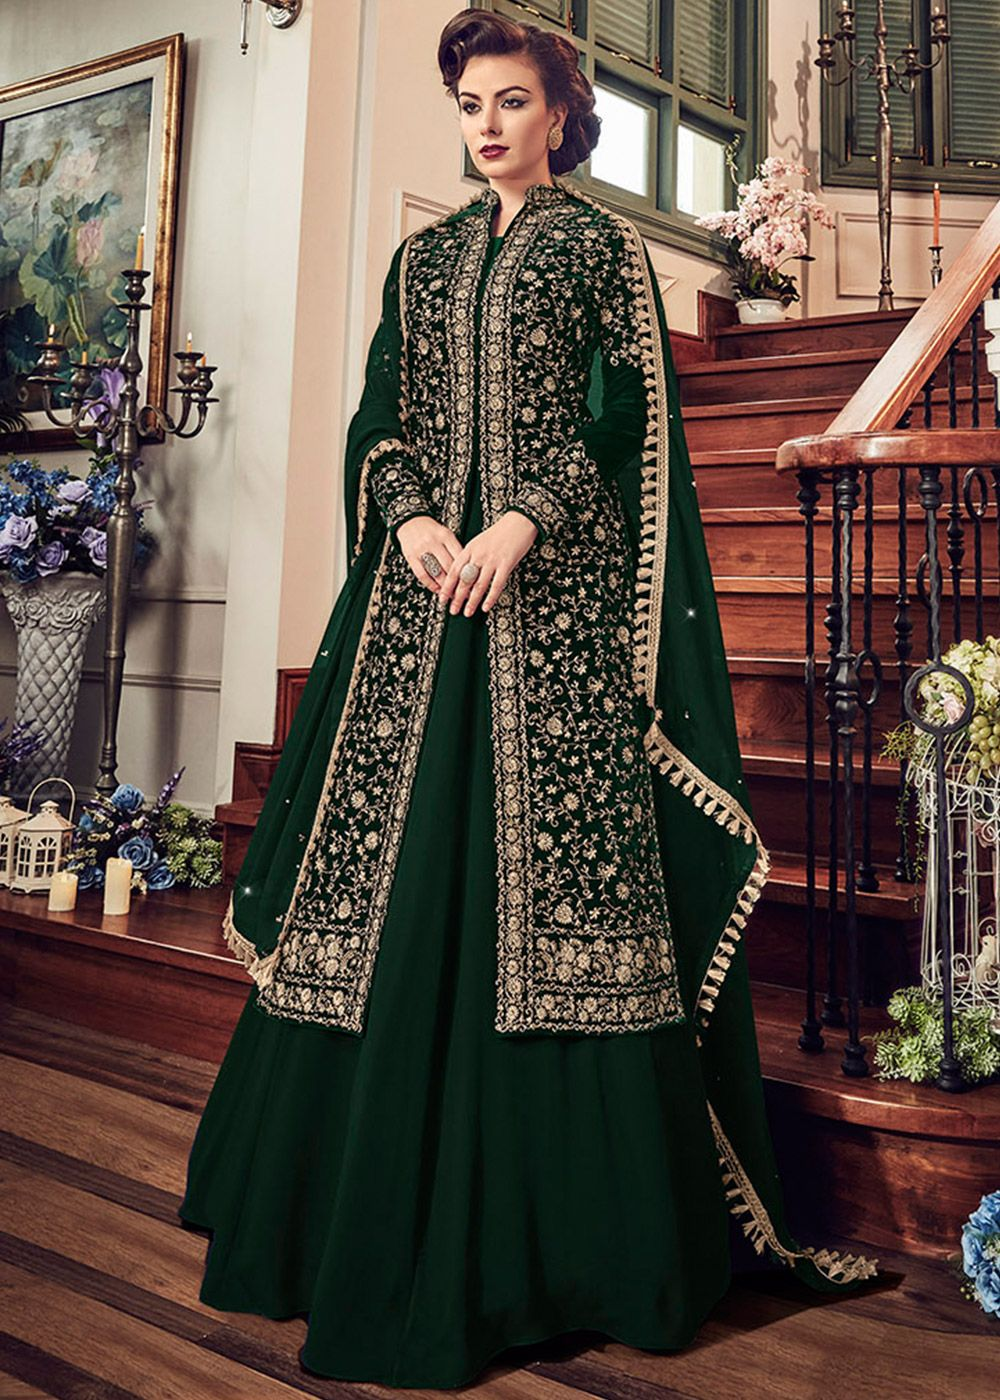 6b8db64f7b Featuring a resplendent mandarin neck green velvet embroidered front slit  kameez decked with floral zari embroidery and stone work.